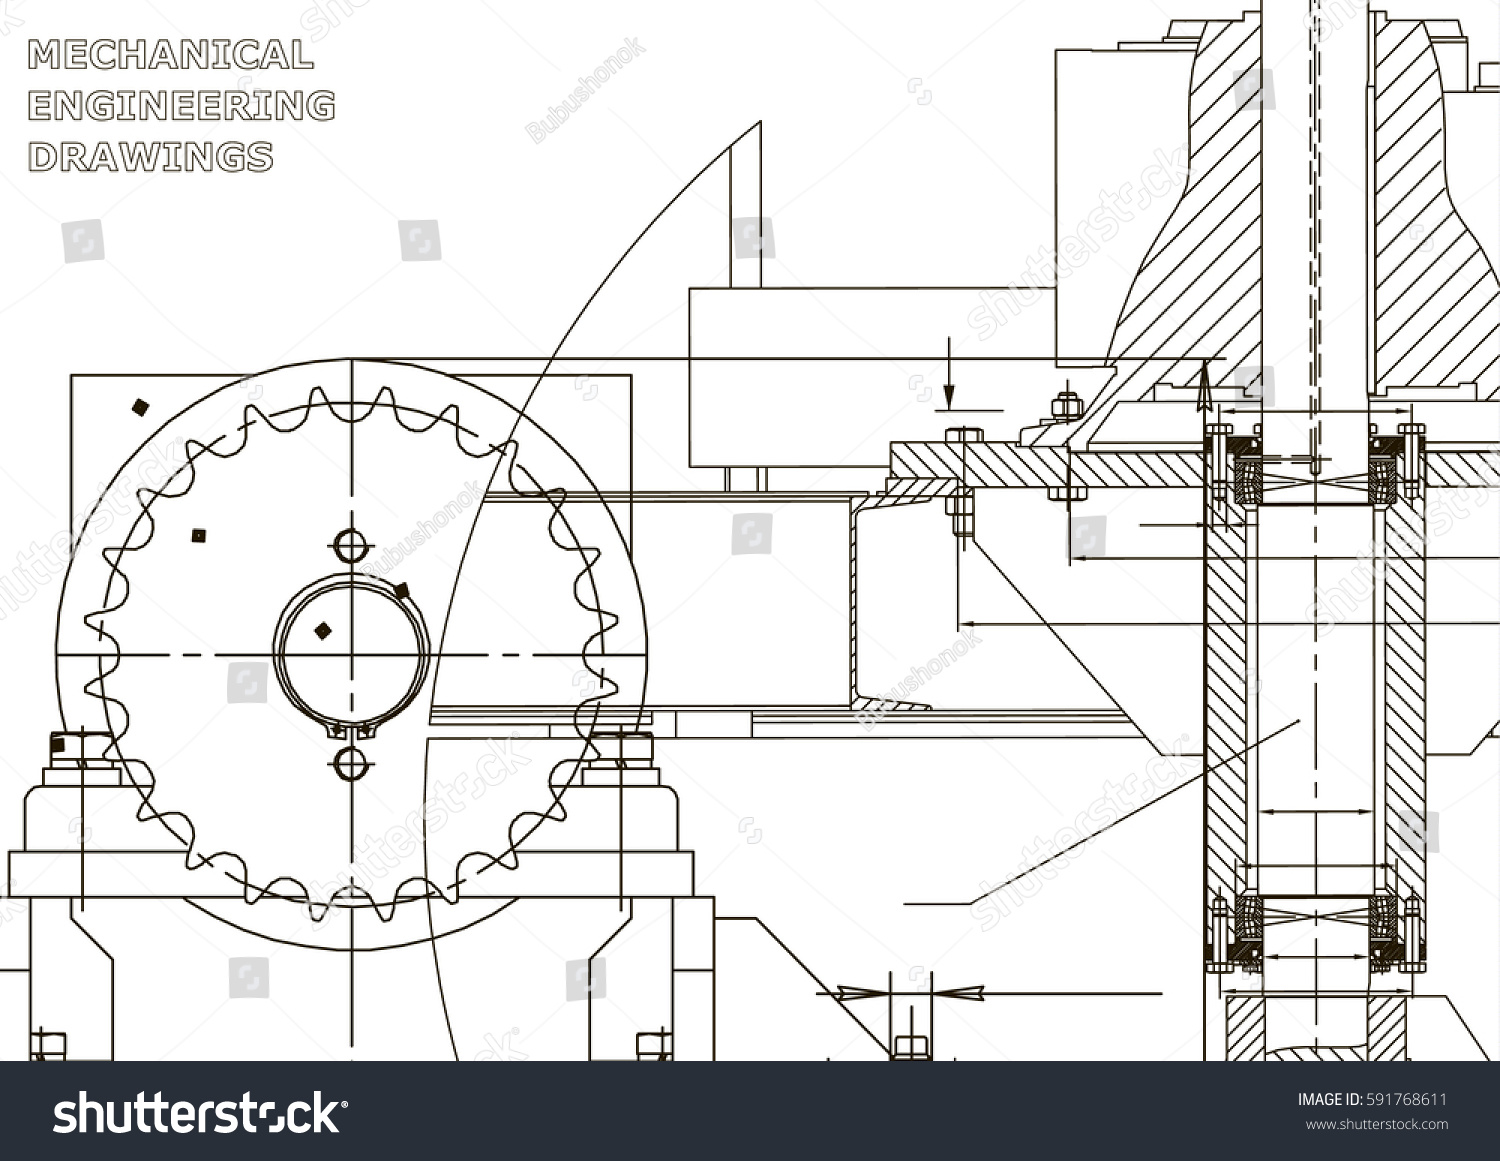 Blueprints engineering backgrounds mechanical engineering for Engineering blueprints